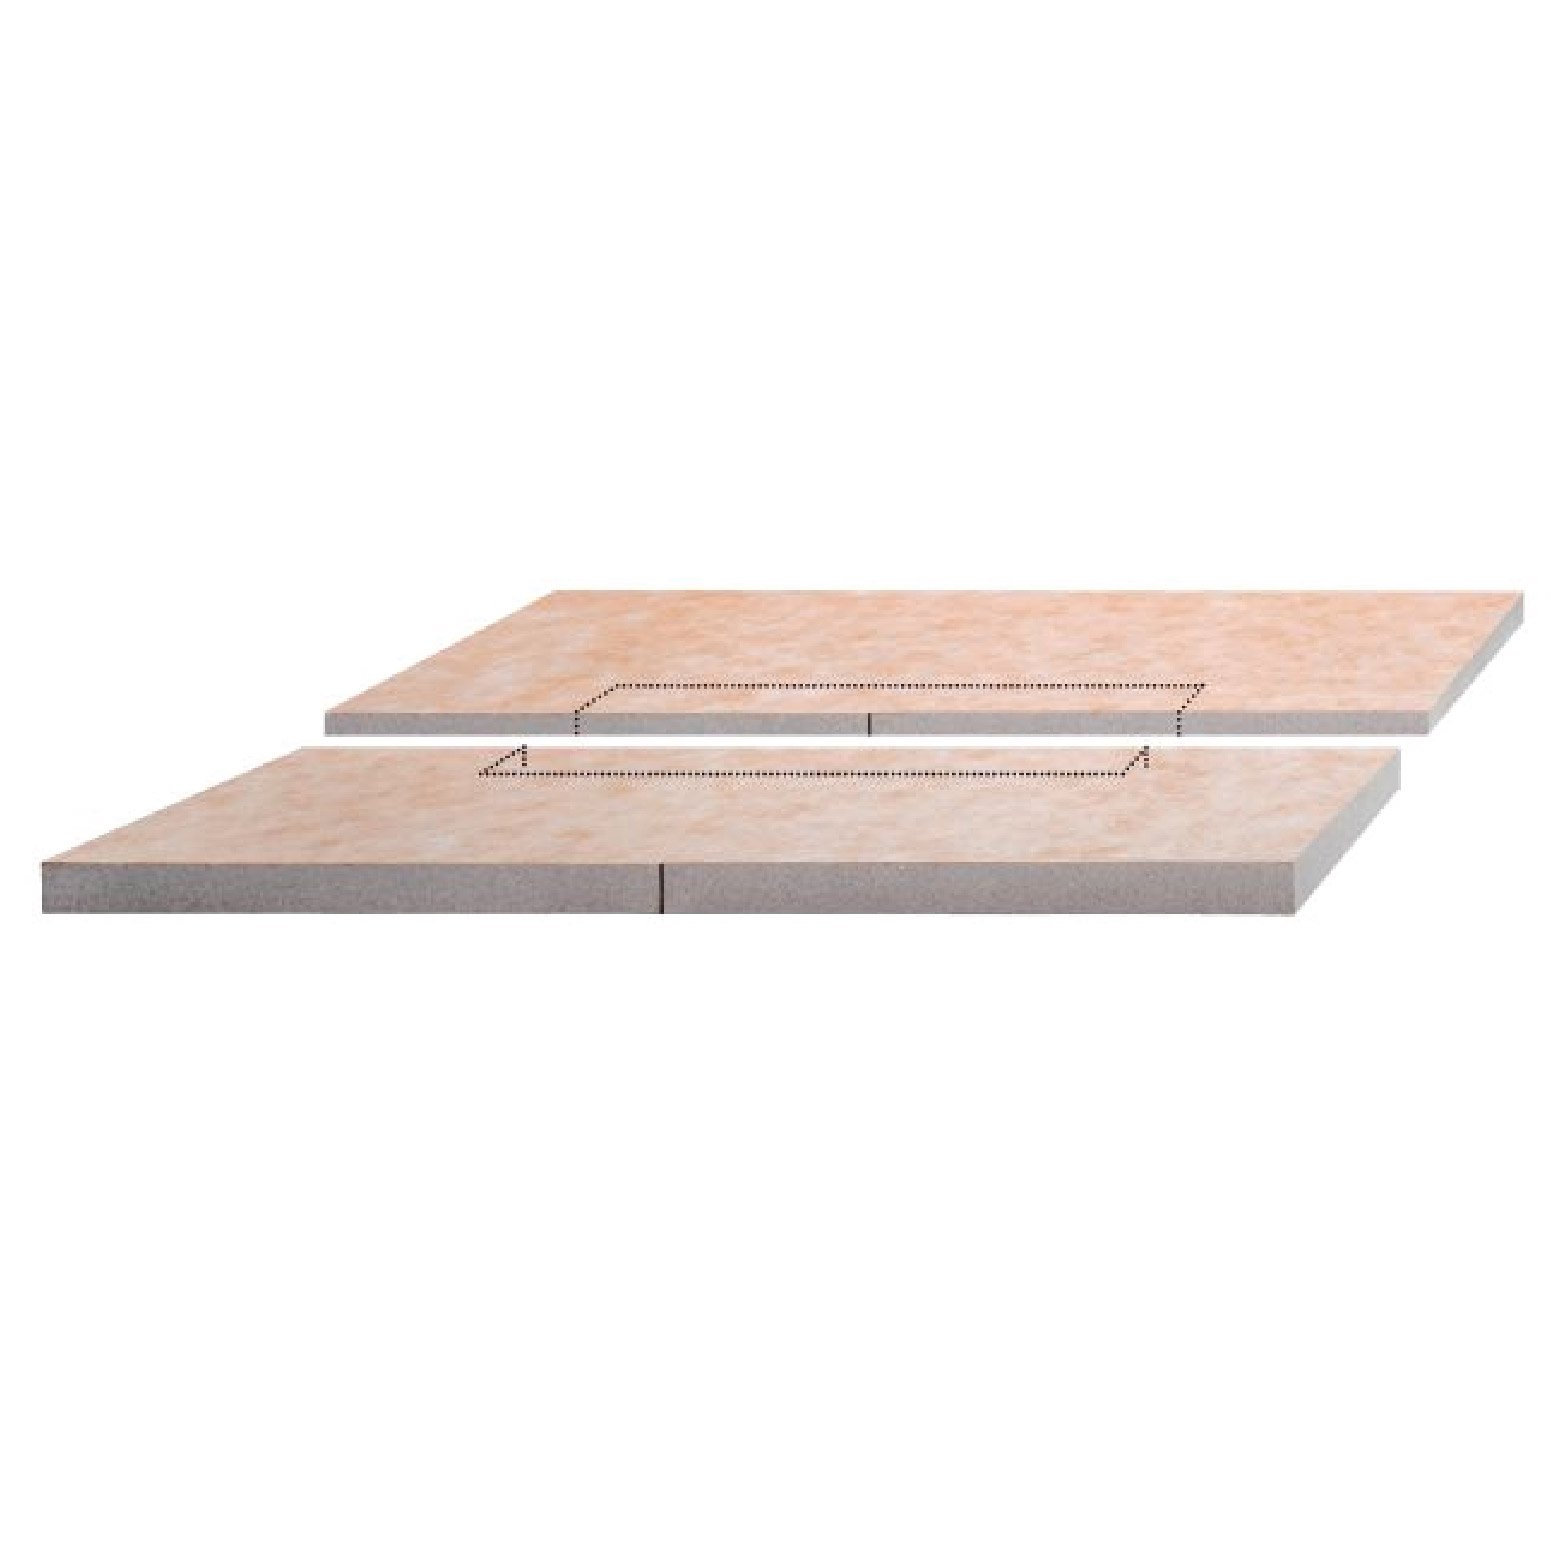 Kerdi Shower Pan Linear Drain.Kerdi Linear Shower Pan 55 X 55 Center Drain